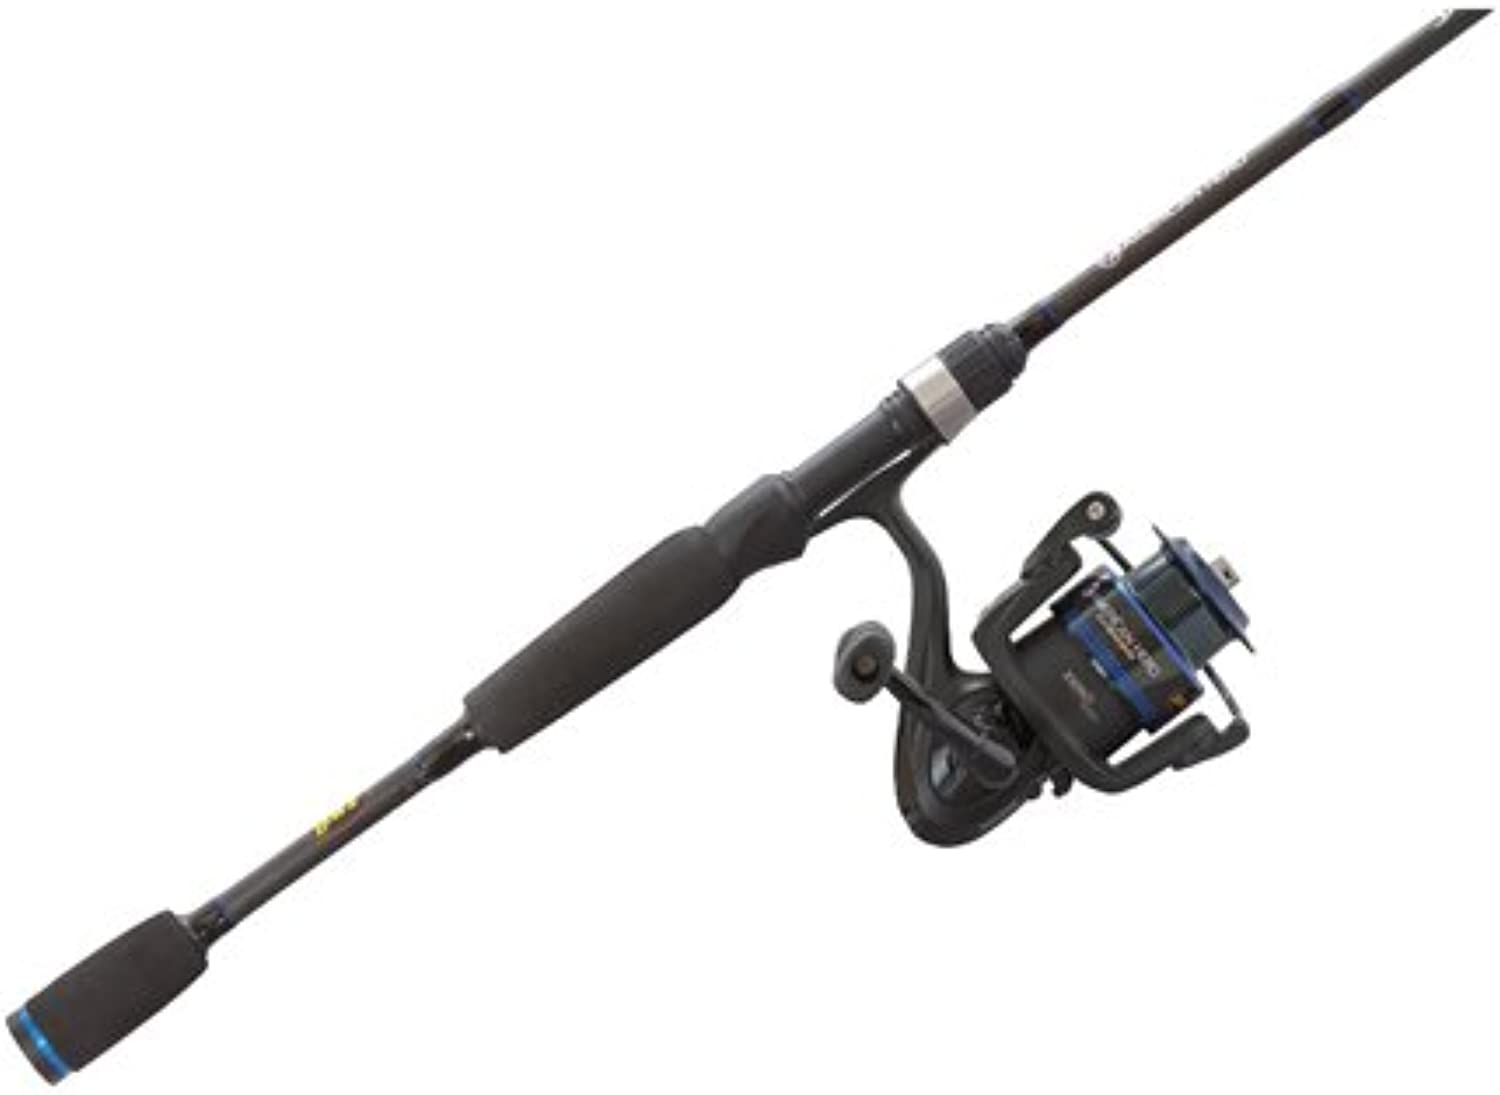 Lew's American Hero Spinning Rod and Reel Combo